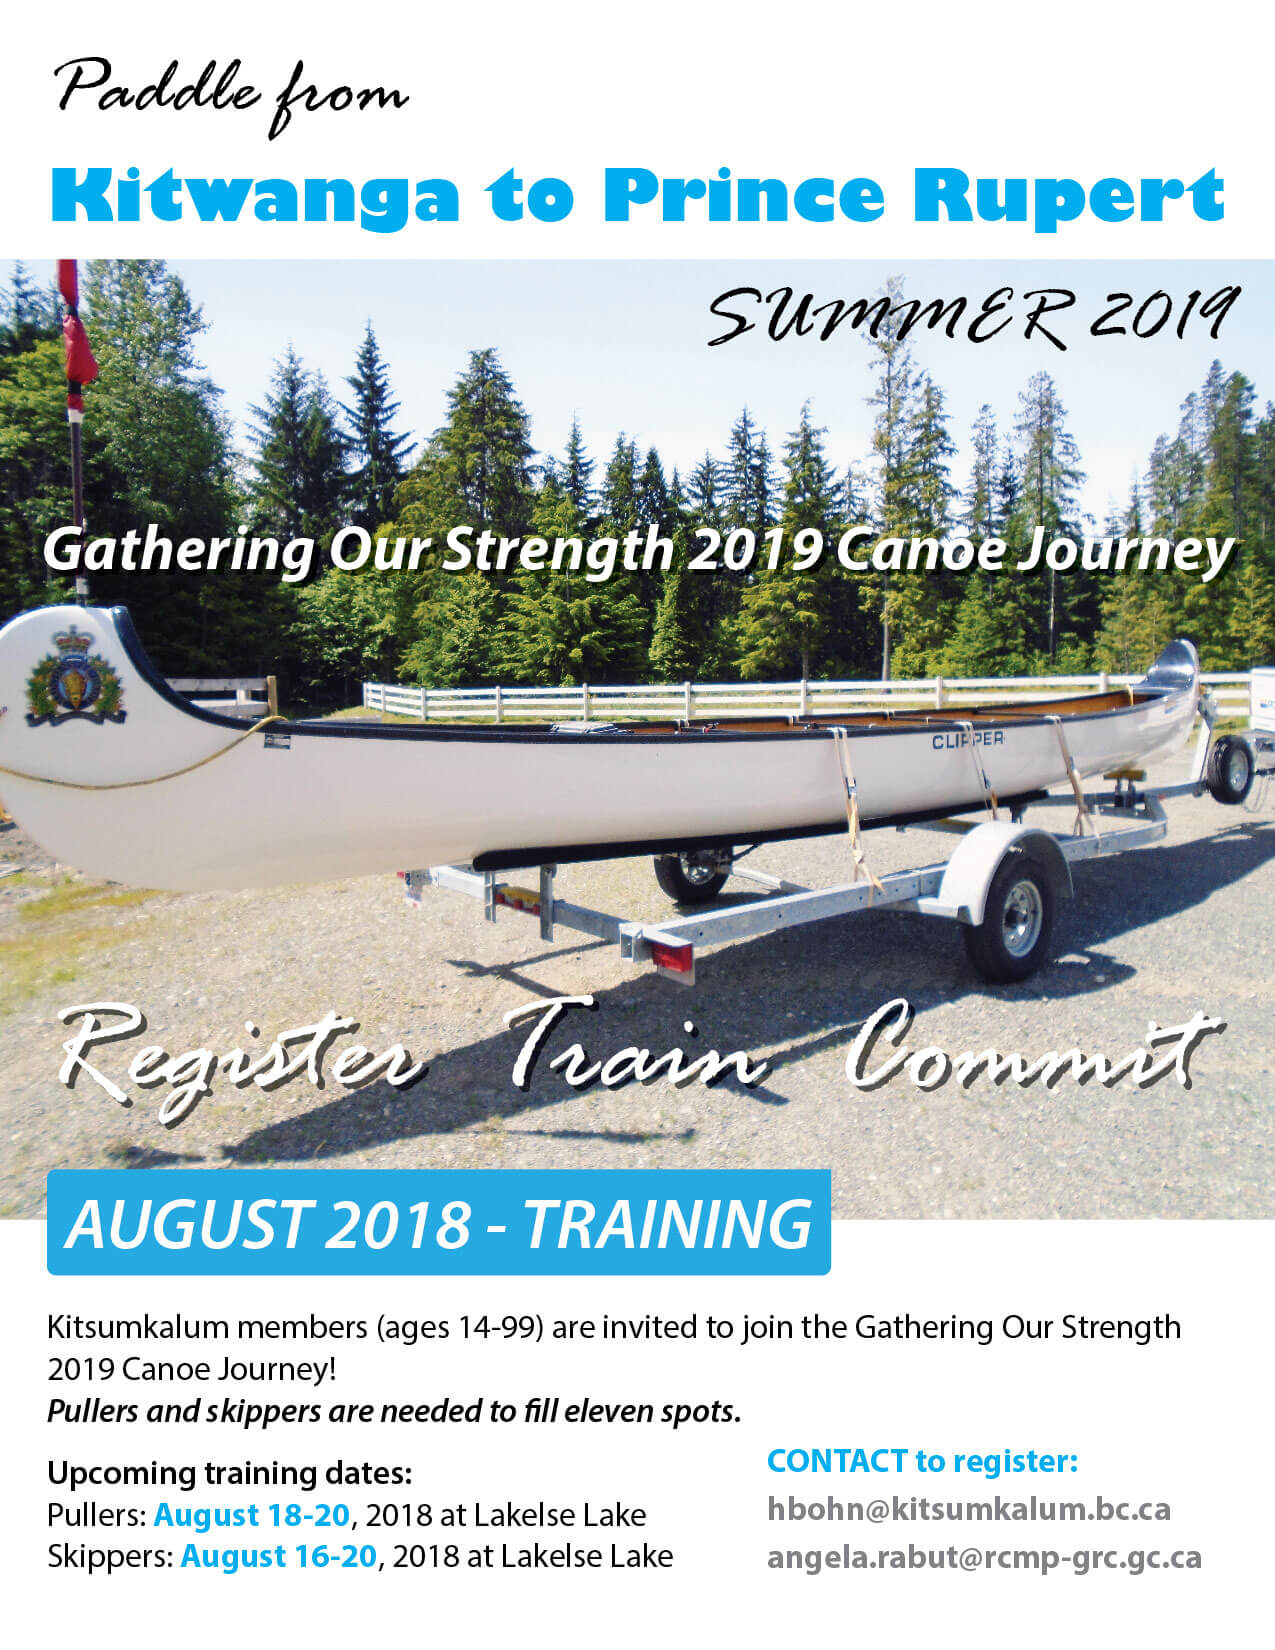 Gathering Our Strength Canoe Journey 2019 – Training in 2018